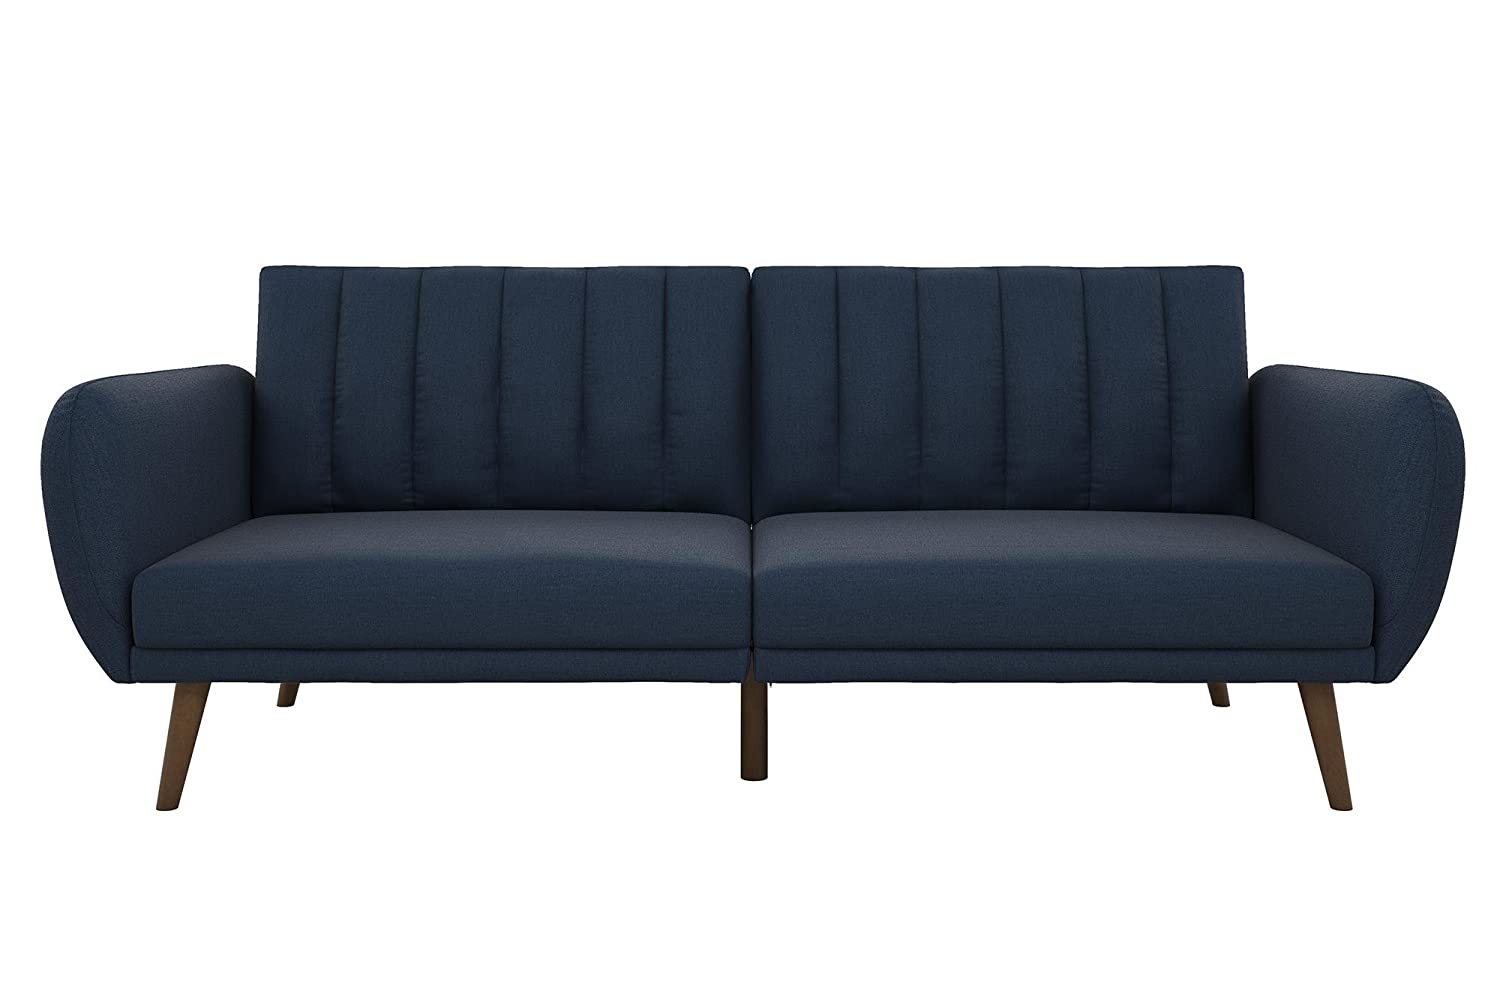 8 Best Futon Reviewed In 2019 Buying Guide Top Futons